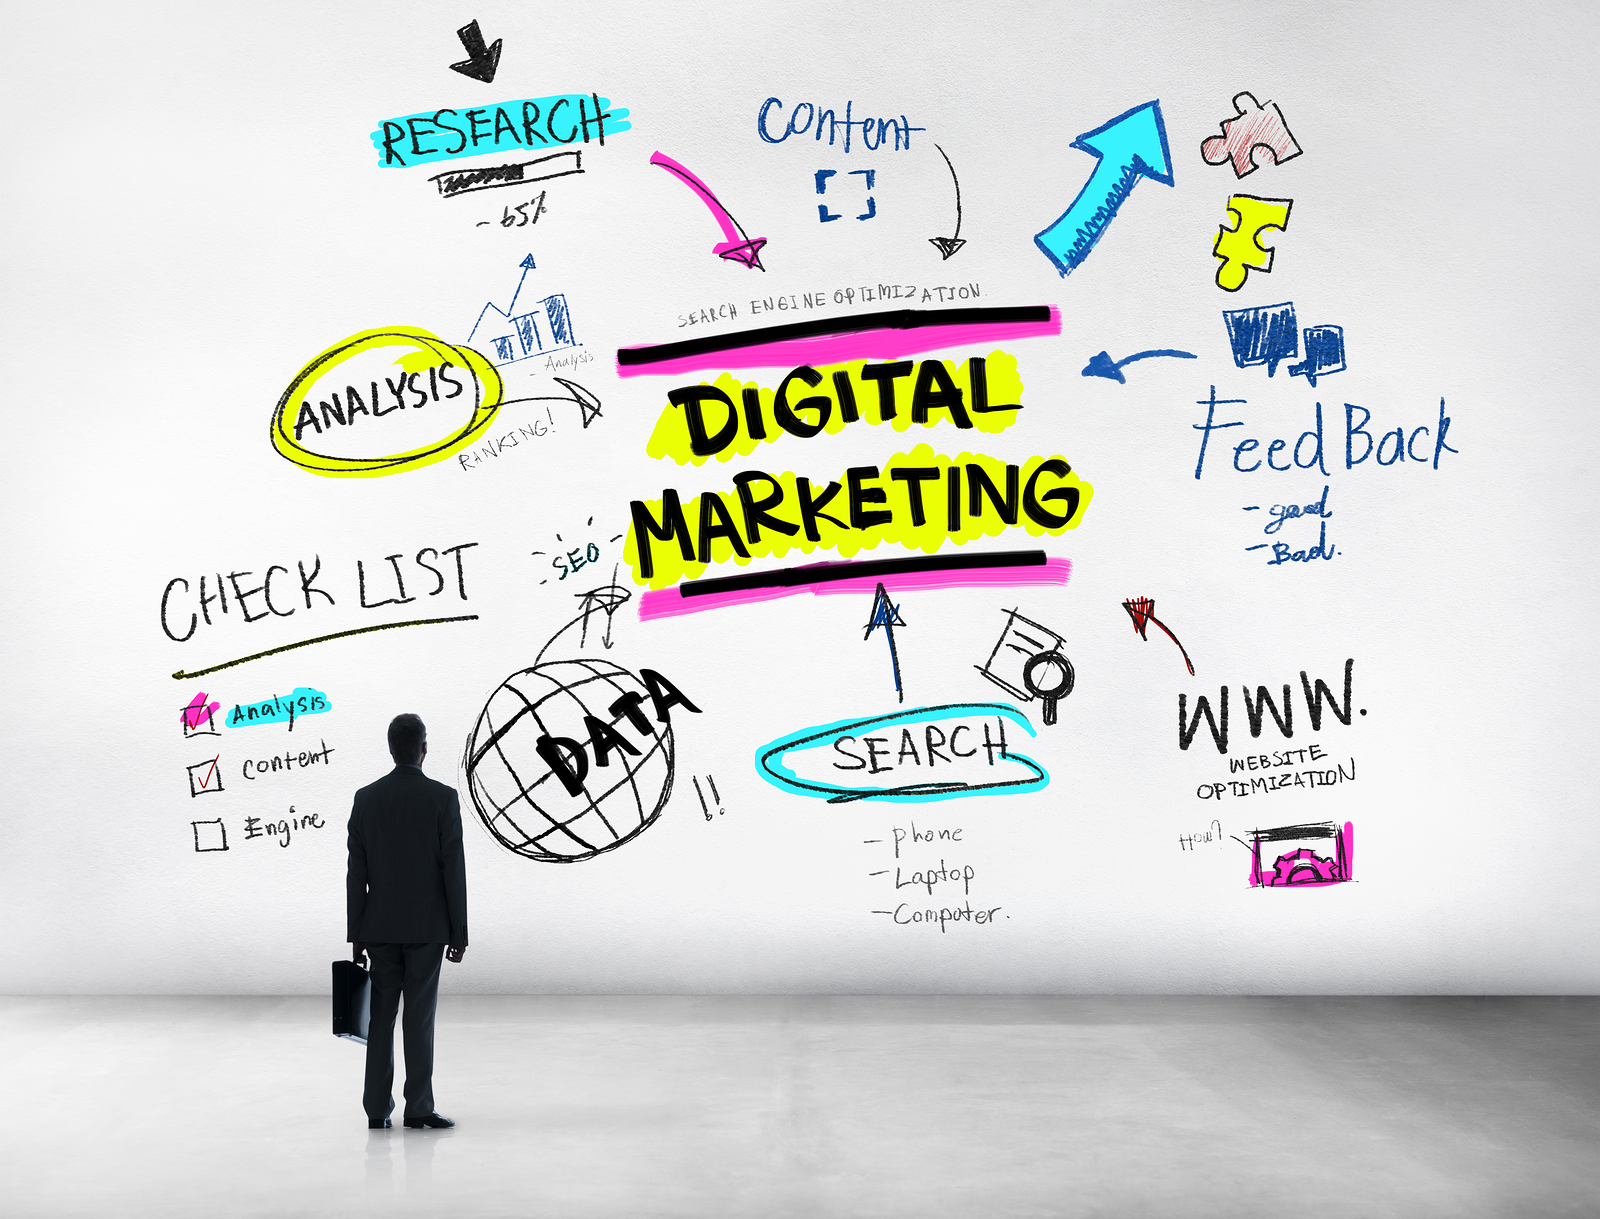 78859-digital-marketing